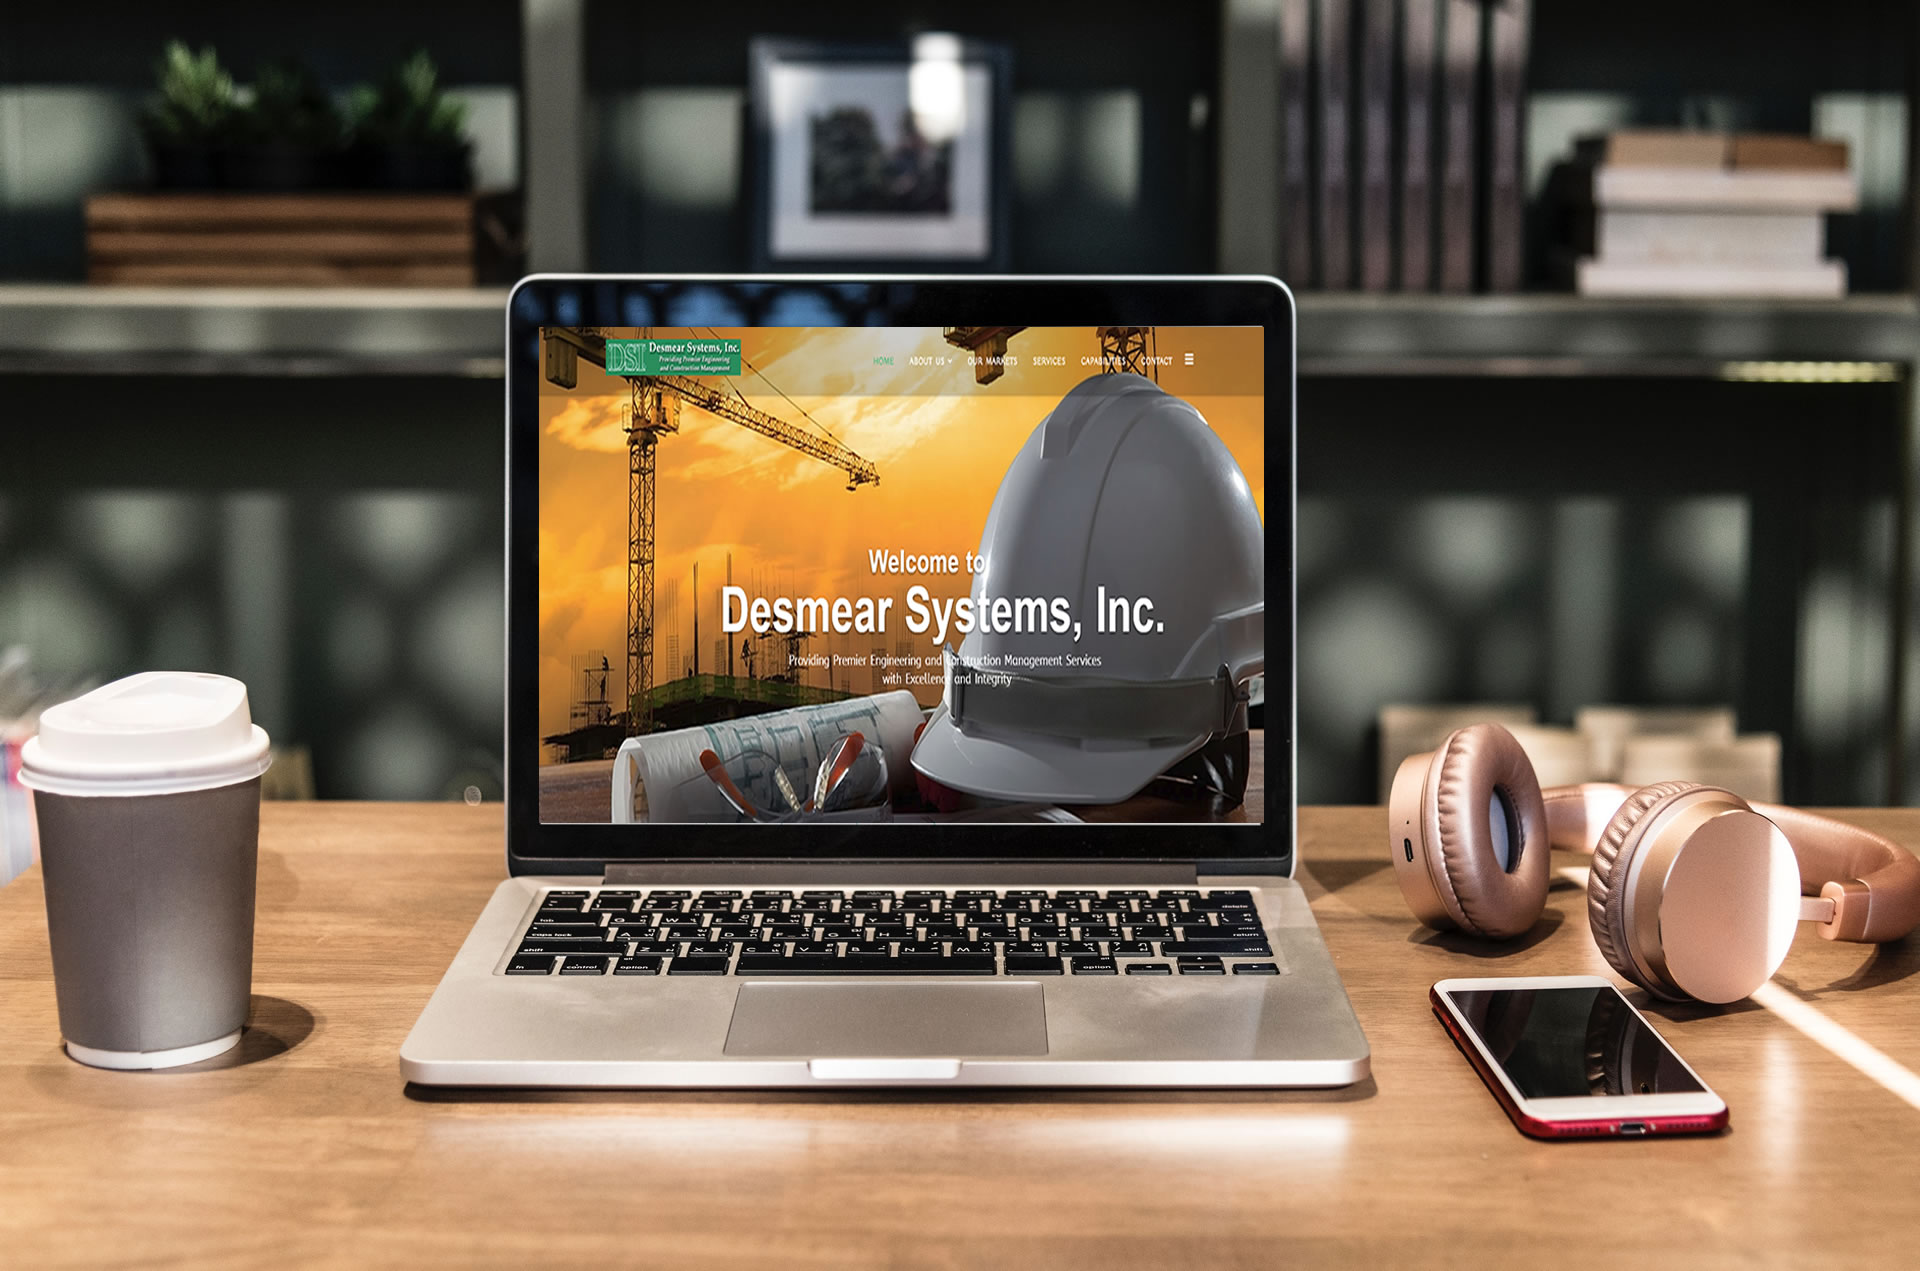 Desmear Systems, Inc.